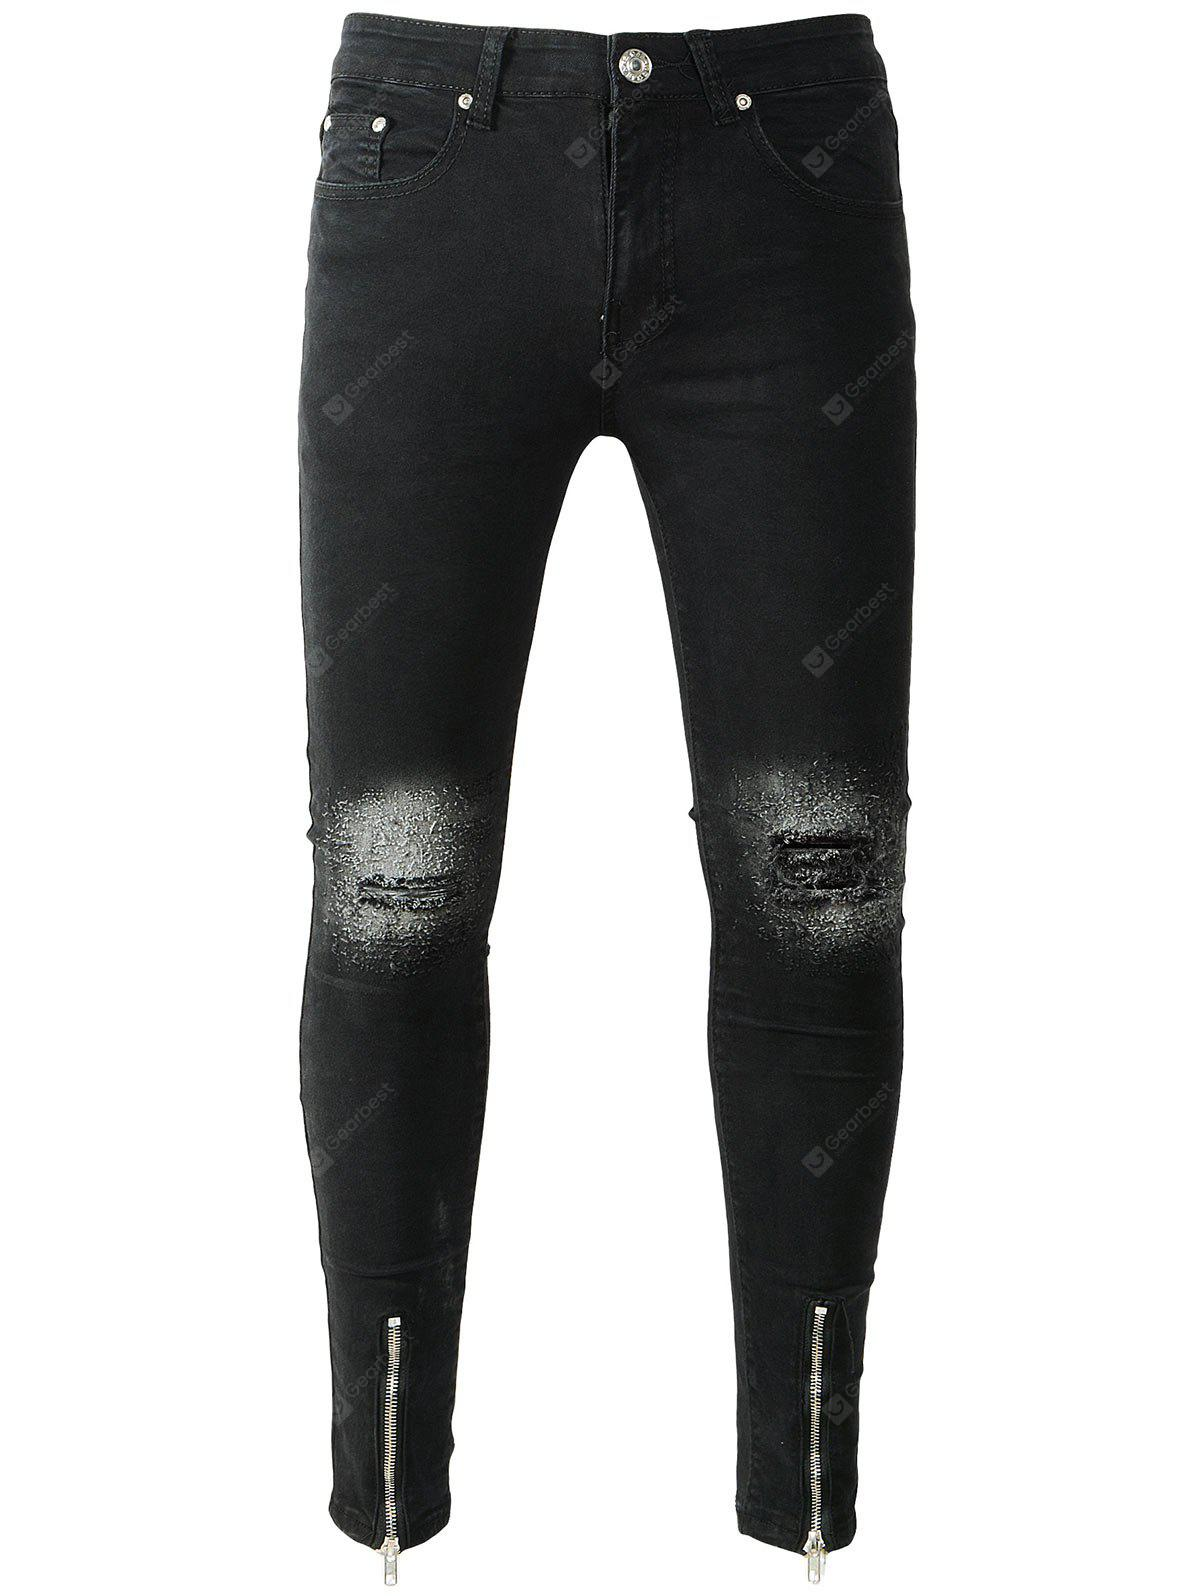 BLACK Zipper Hem Ripped Knee Skinny Jeans